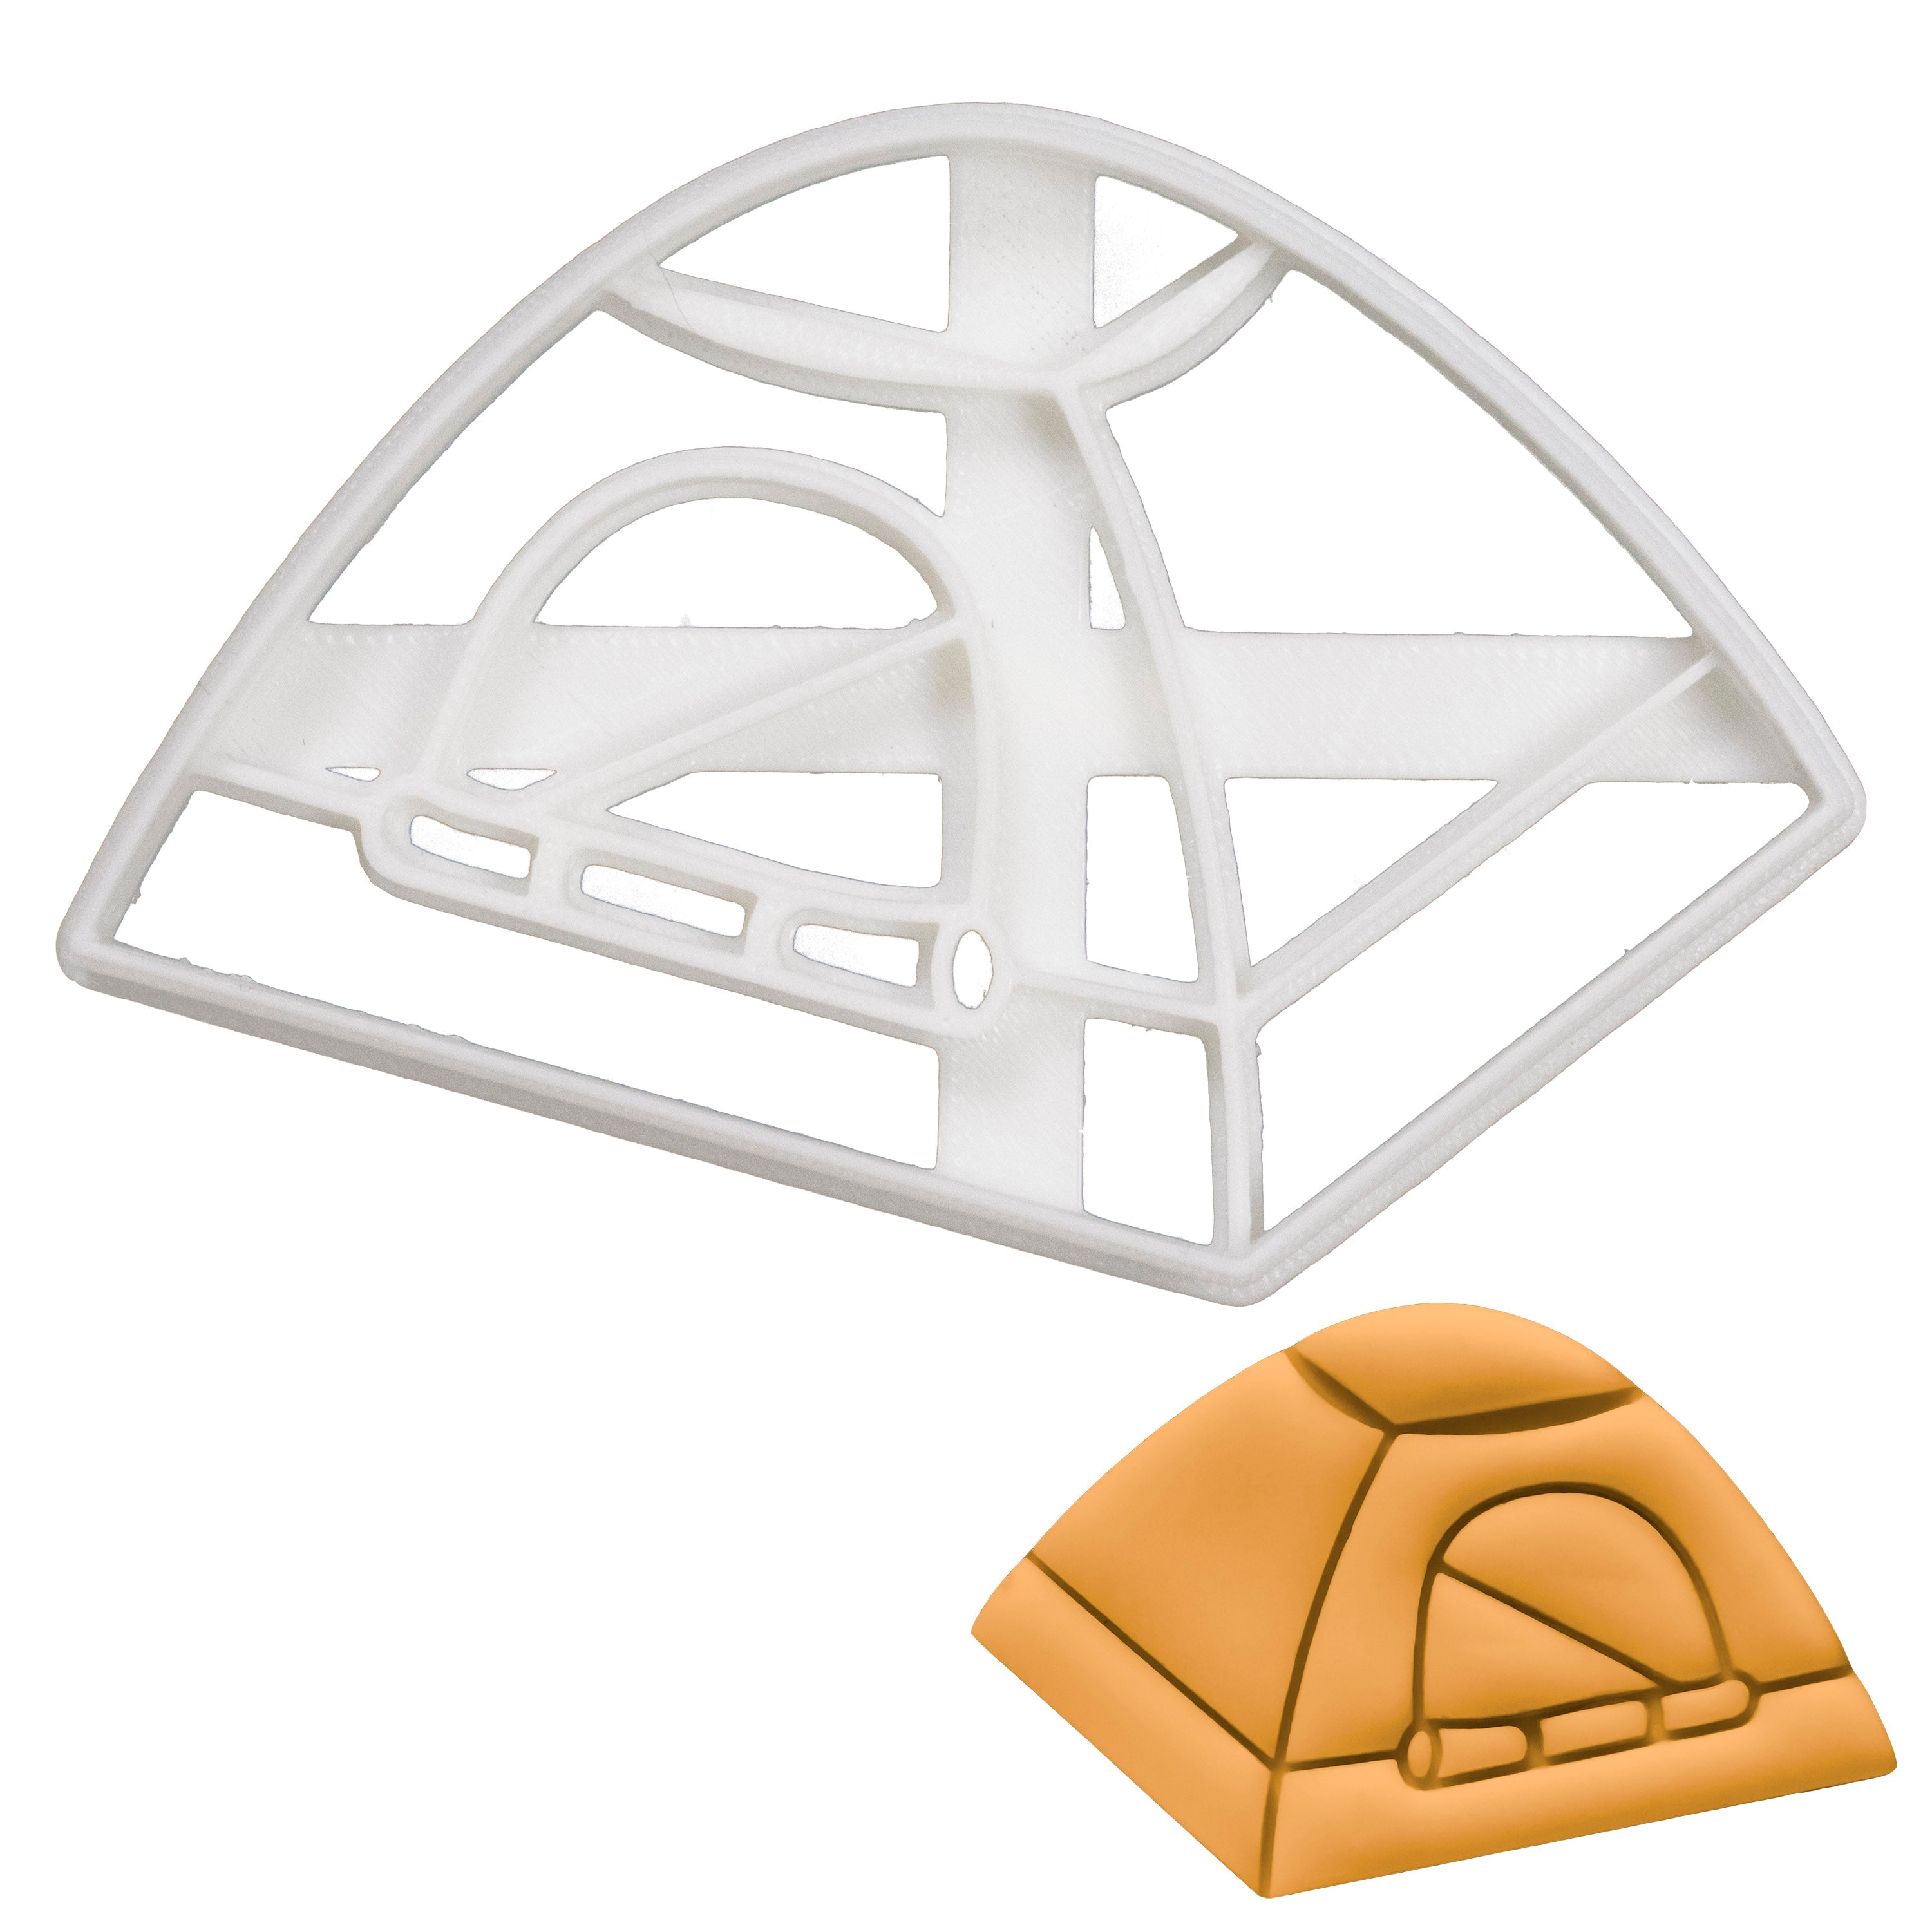 Camping Tent Cookie Cutter